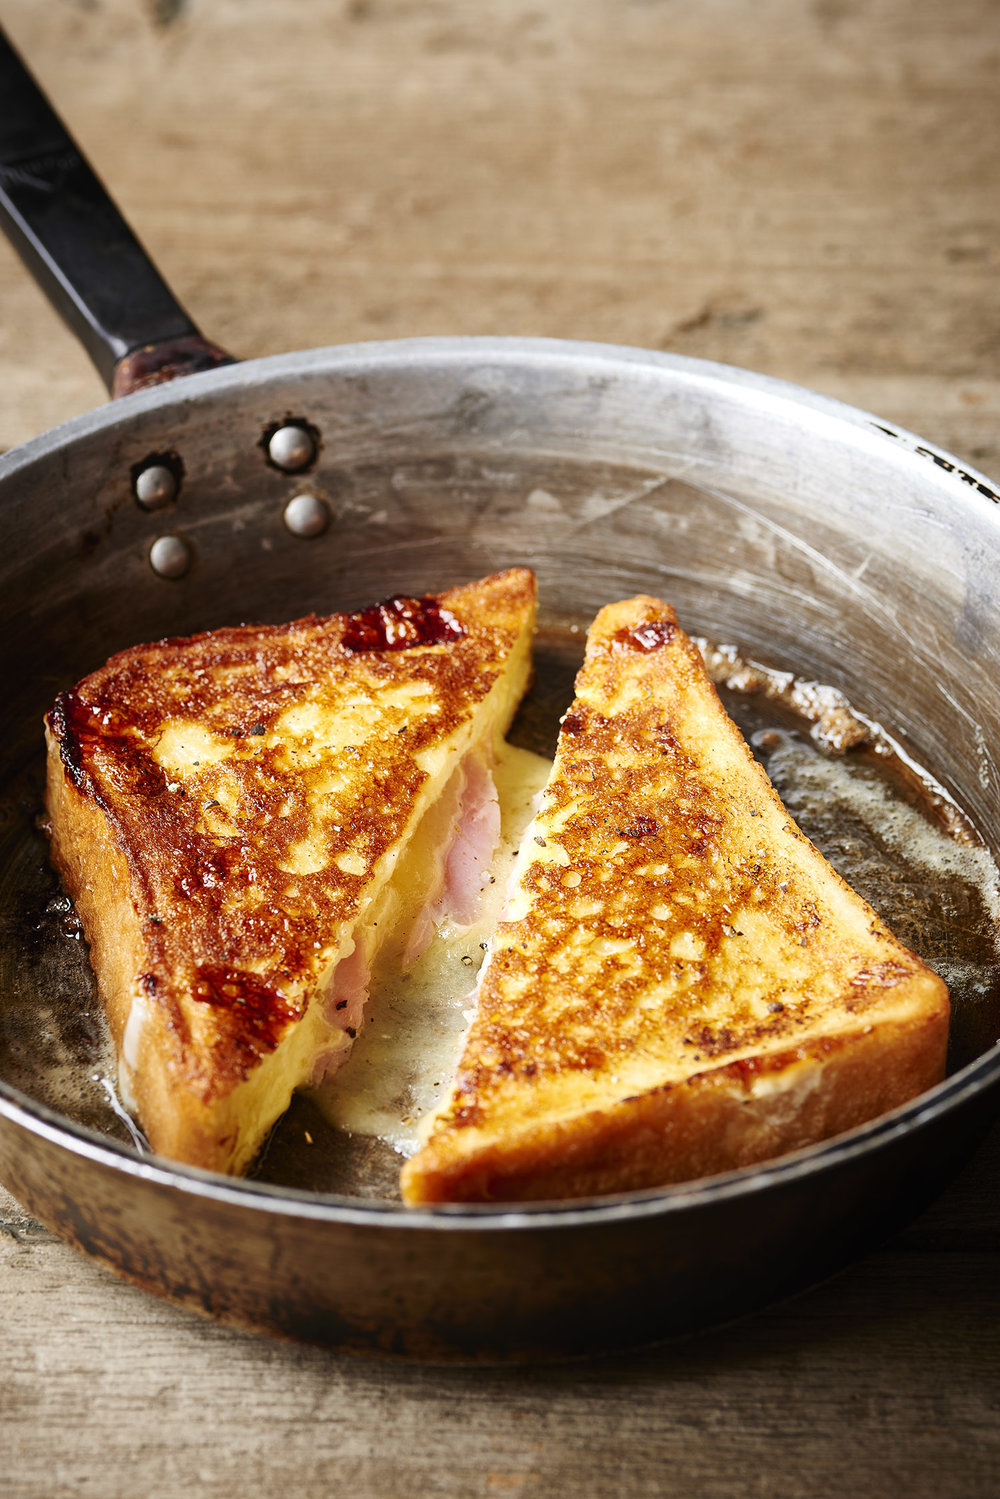 ham+cheesefrenchtoast copy.jpg